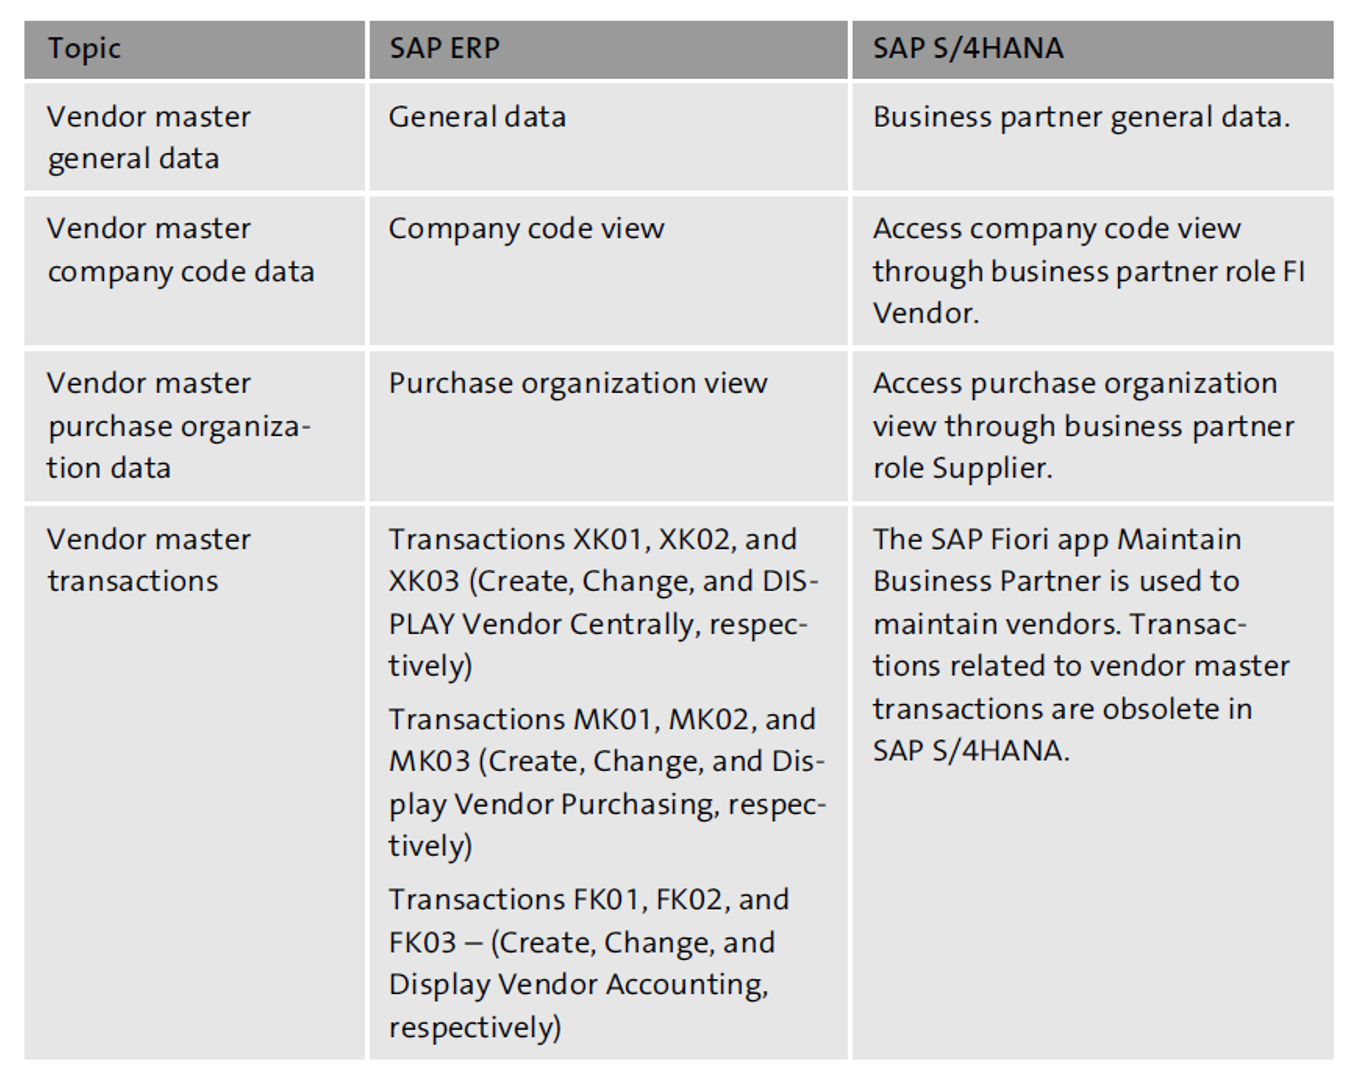 SAP S/4HANA Business Partner Overview